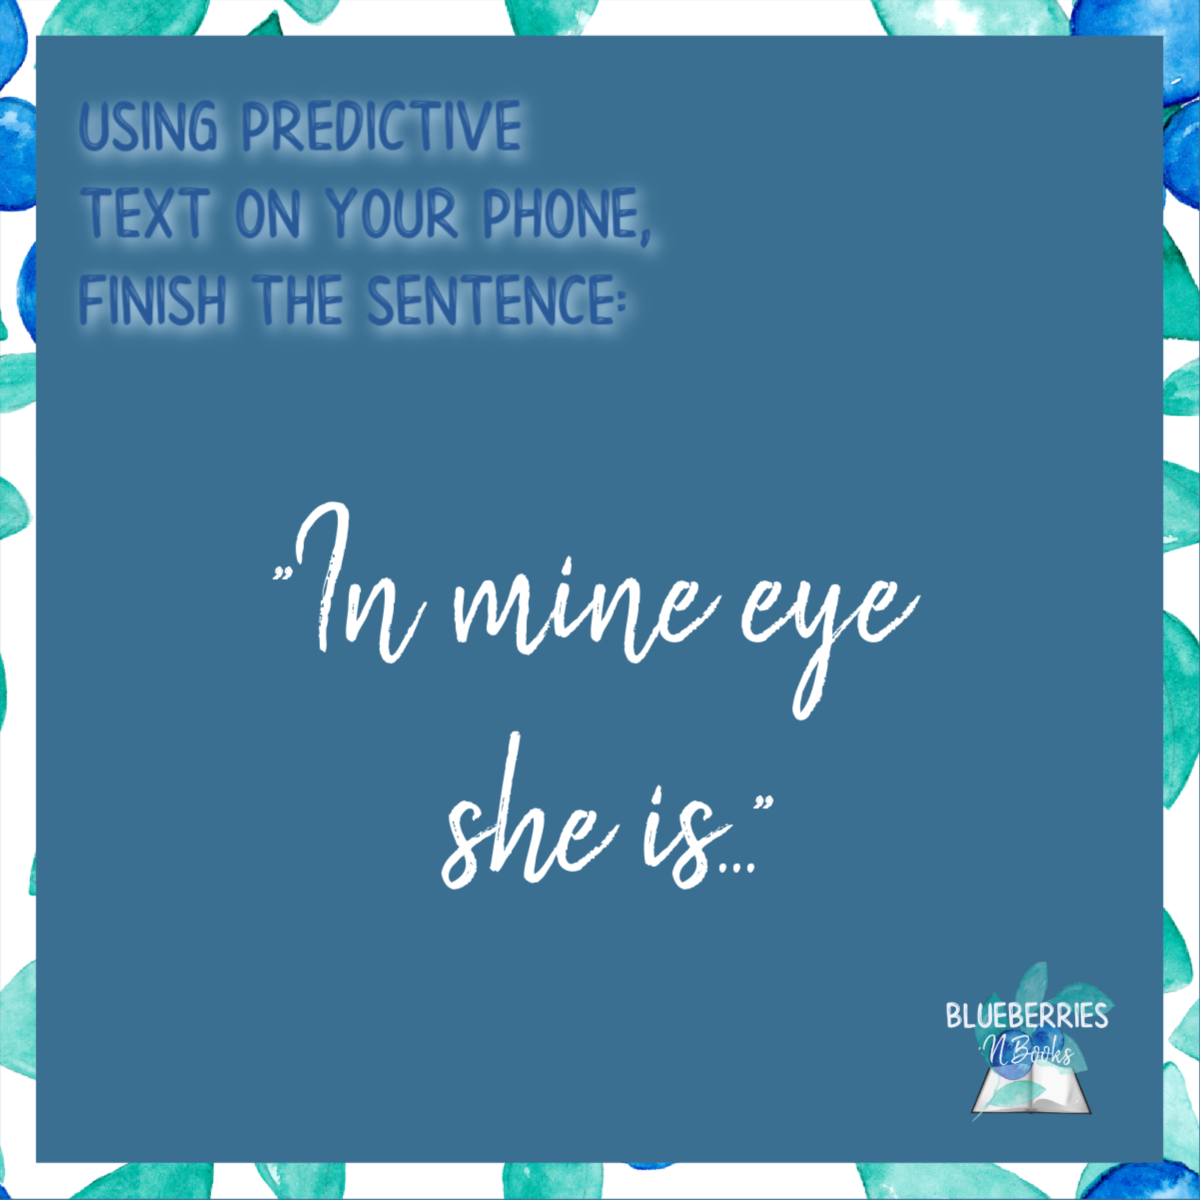 A Month Or So Ago Our Group Talked About The Play Much Ado About Nothing Here S A Predictor Sentence For You Predictive Text Books To Read Sentences